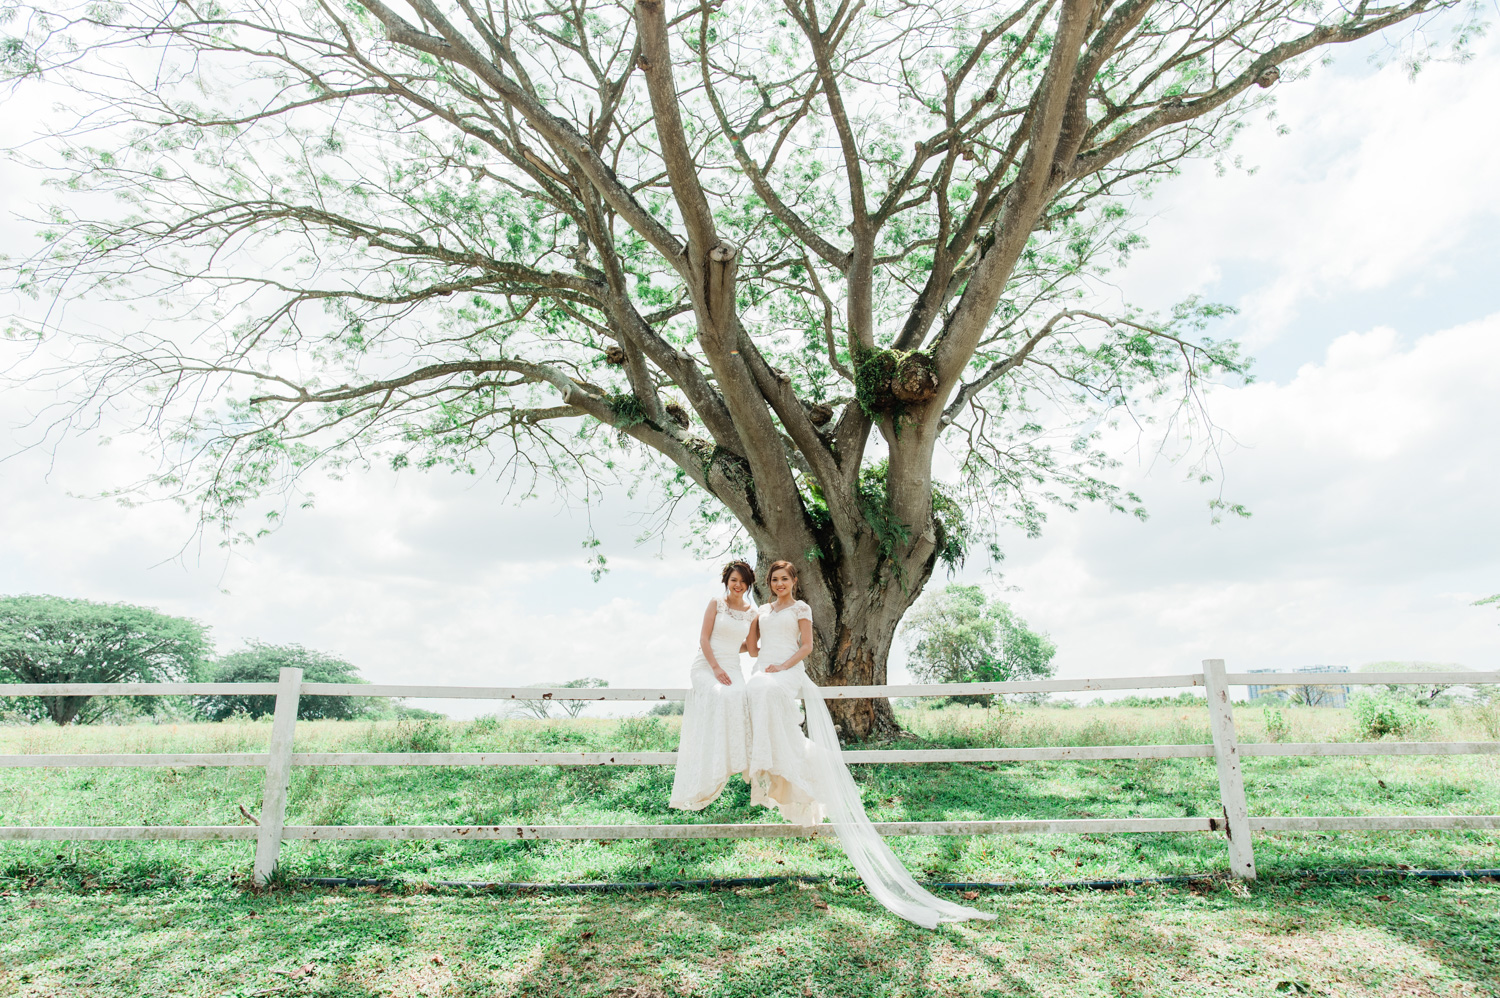 kuala-lumpur-bridal-styled-bohemian-floral-themed-upm-farm-raynis-chow-makeup-bohochic-bohostyle